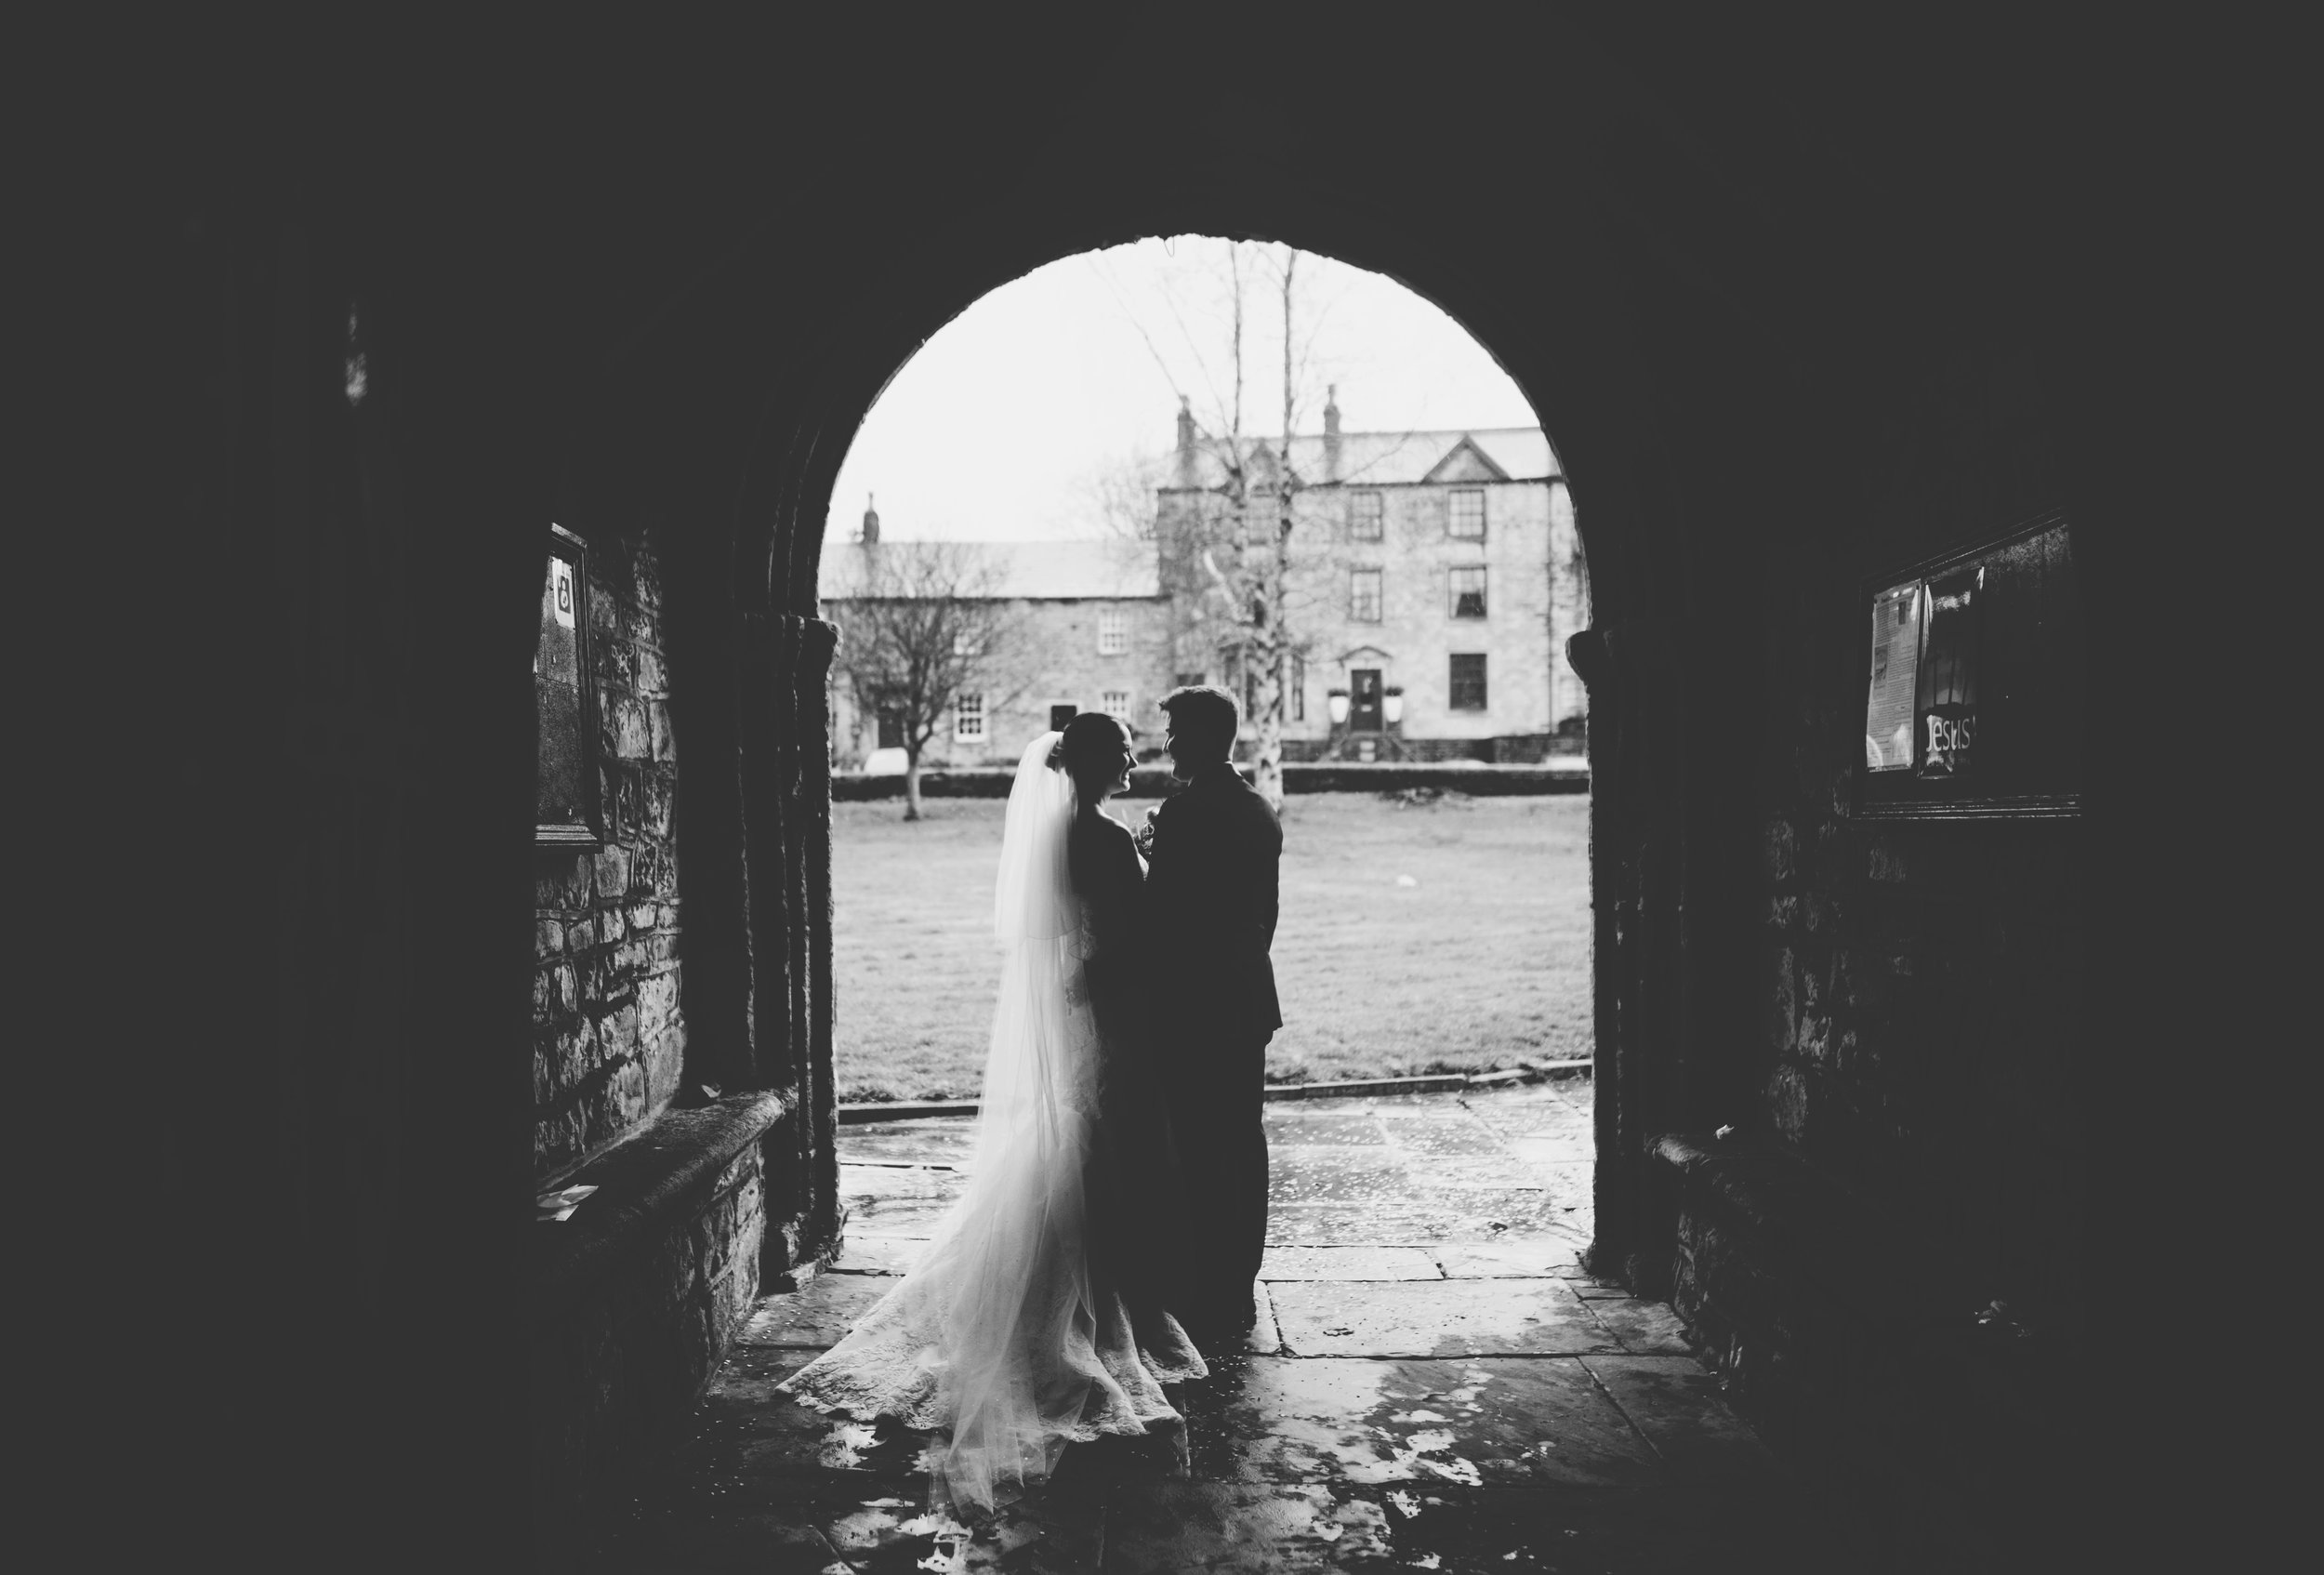 Creative black and white silouhette of bride and groom Lancashire wedding